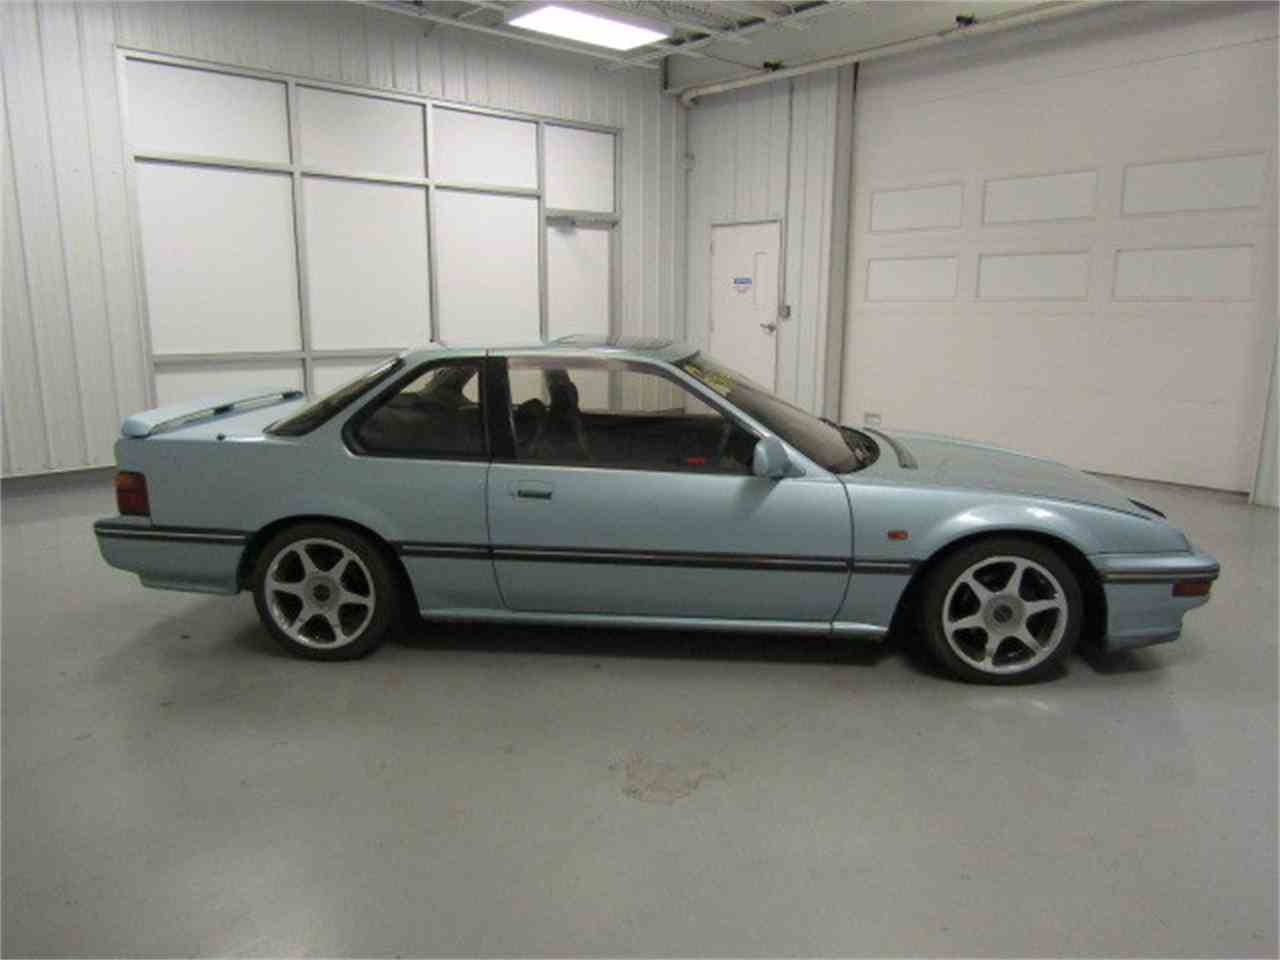 Large Picture of 1988 Honda Prelude located in Virginia - $6,979.00 - JM30